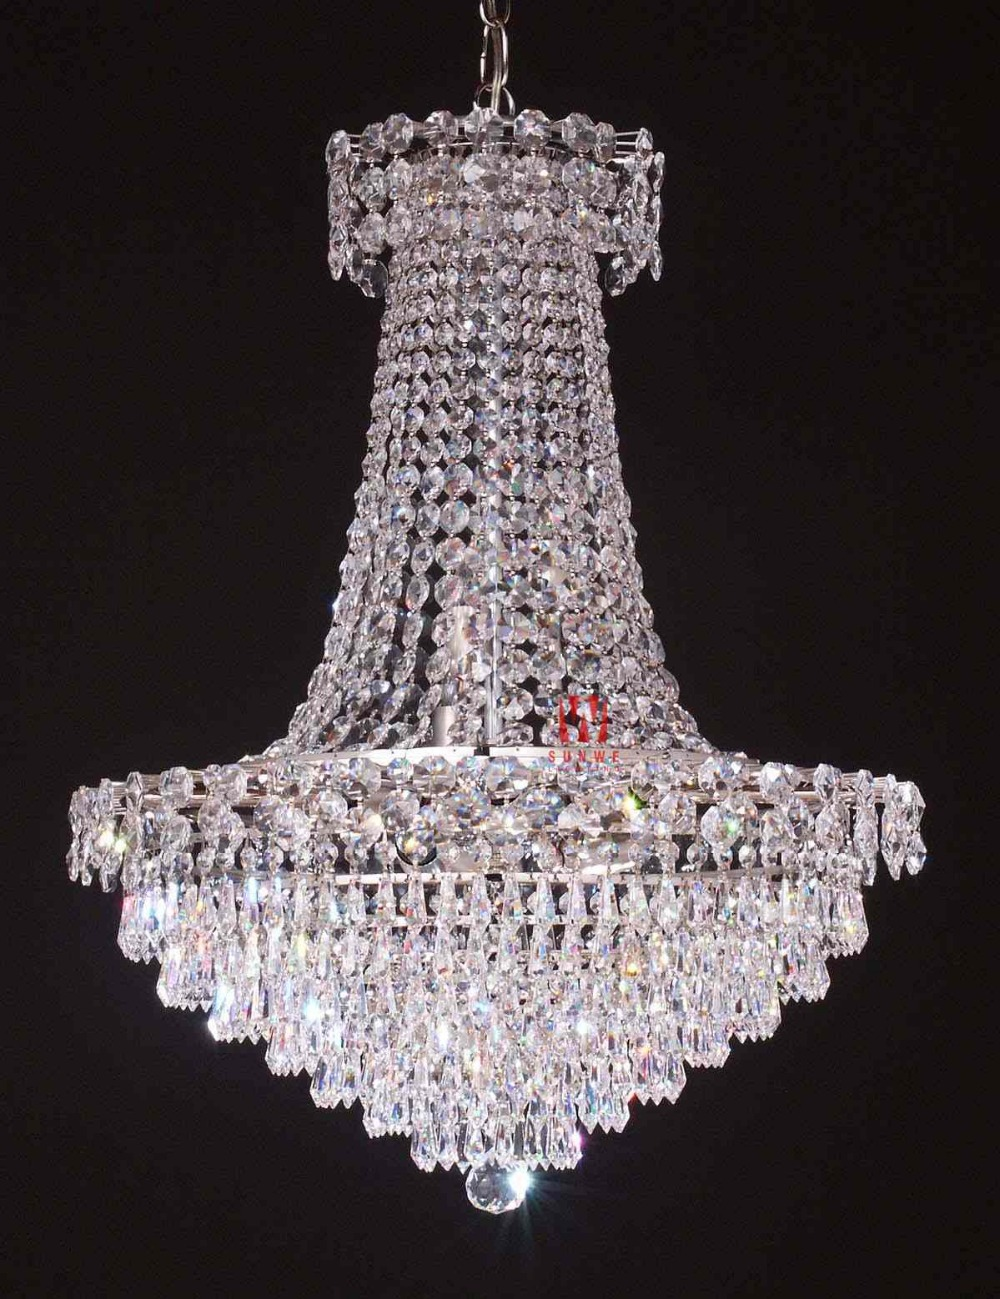 bedroom chandeliers from china best selling small bedroom chandeliers